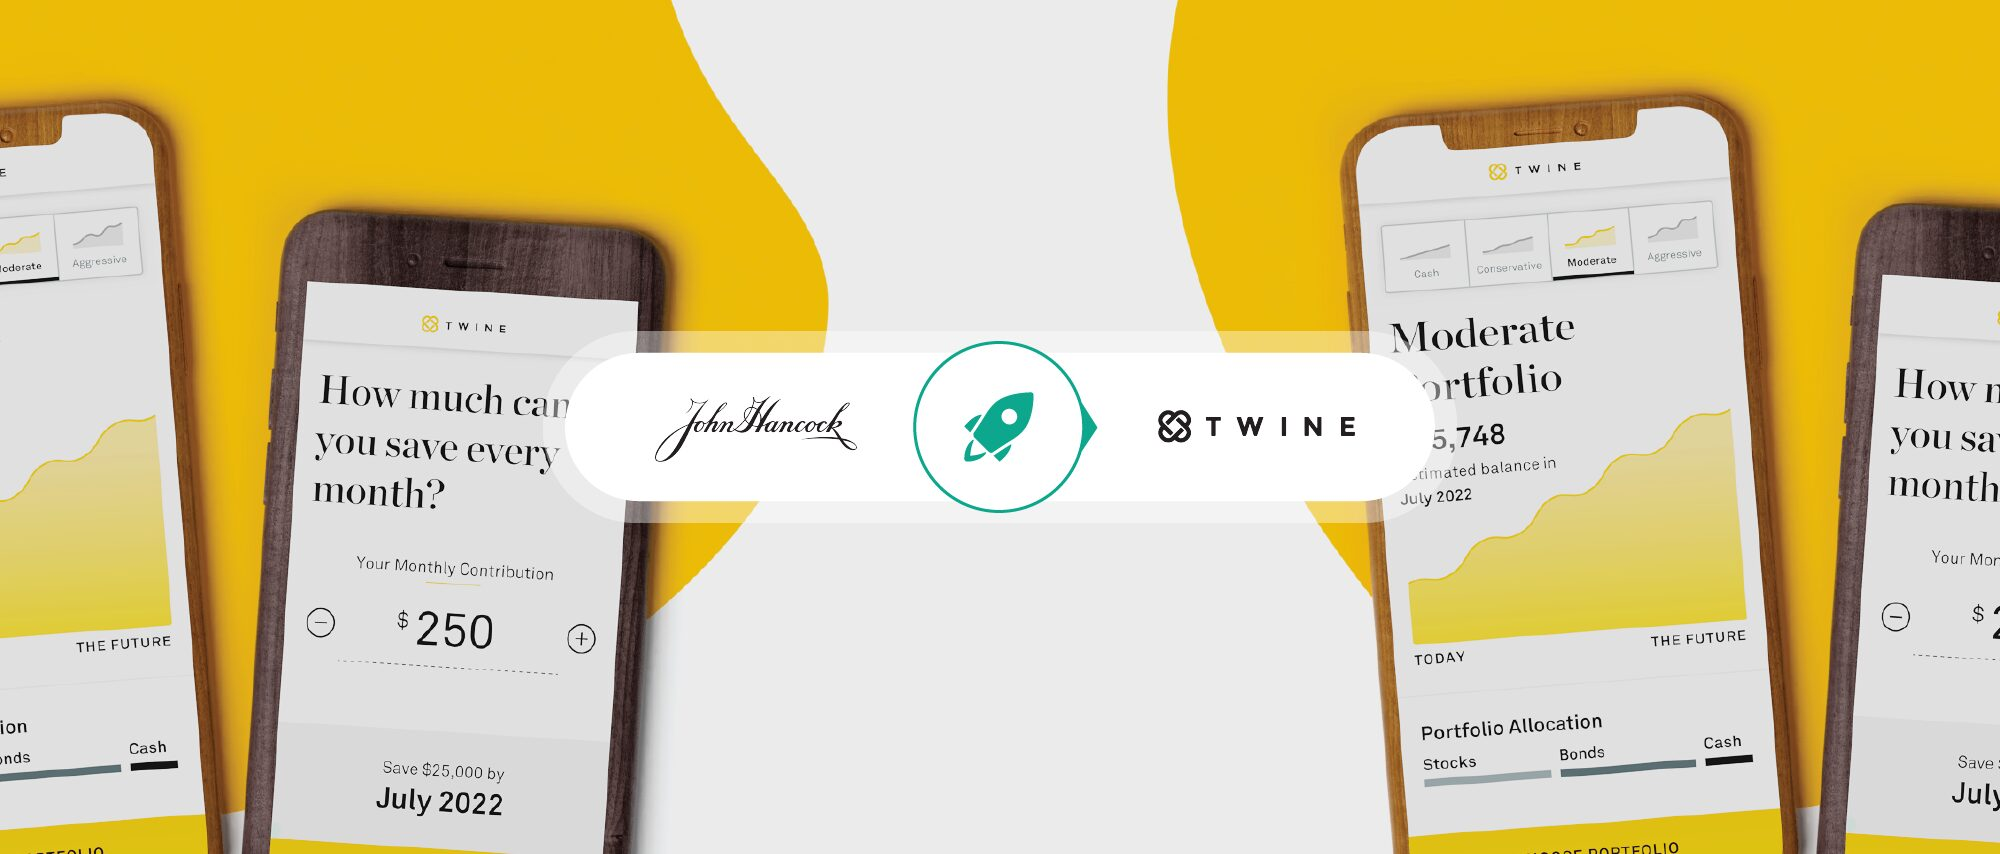 How A 156-Year-Old Investment Firm Built 2019's Best FinTech Mobile App: John Hancock's Twine